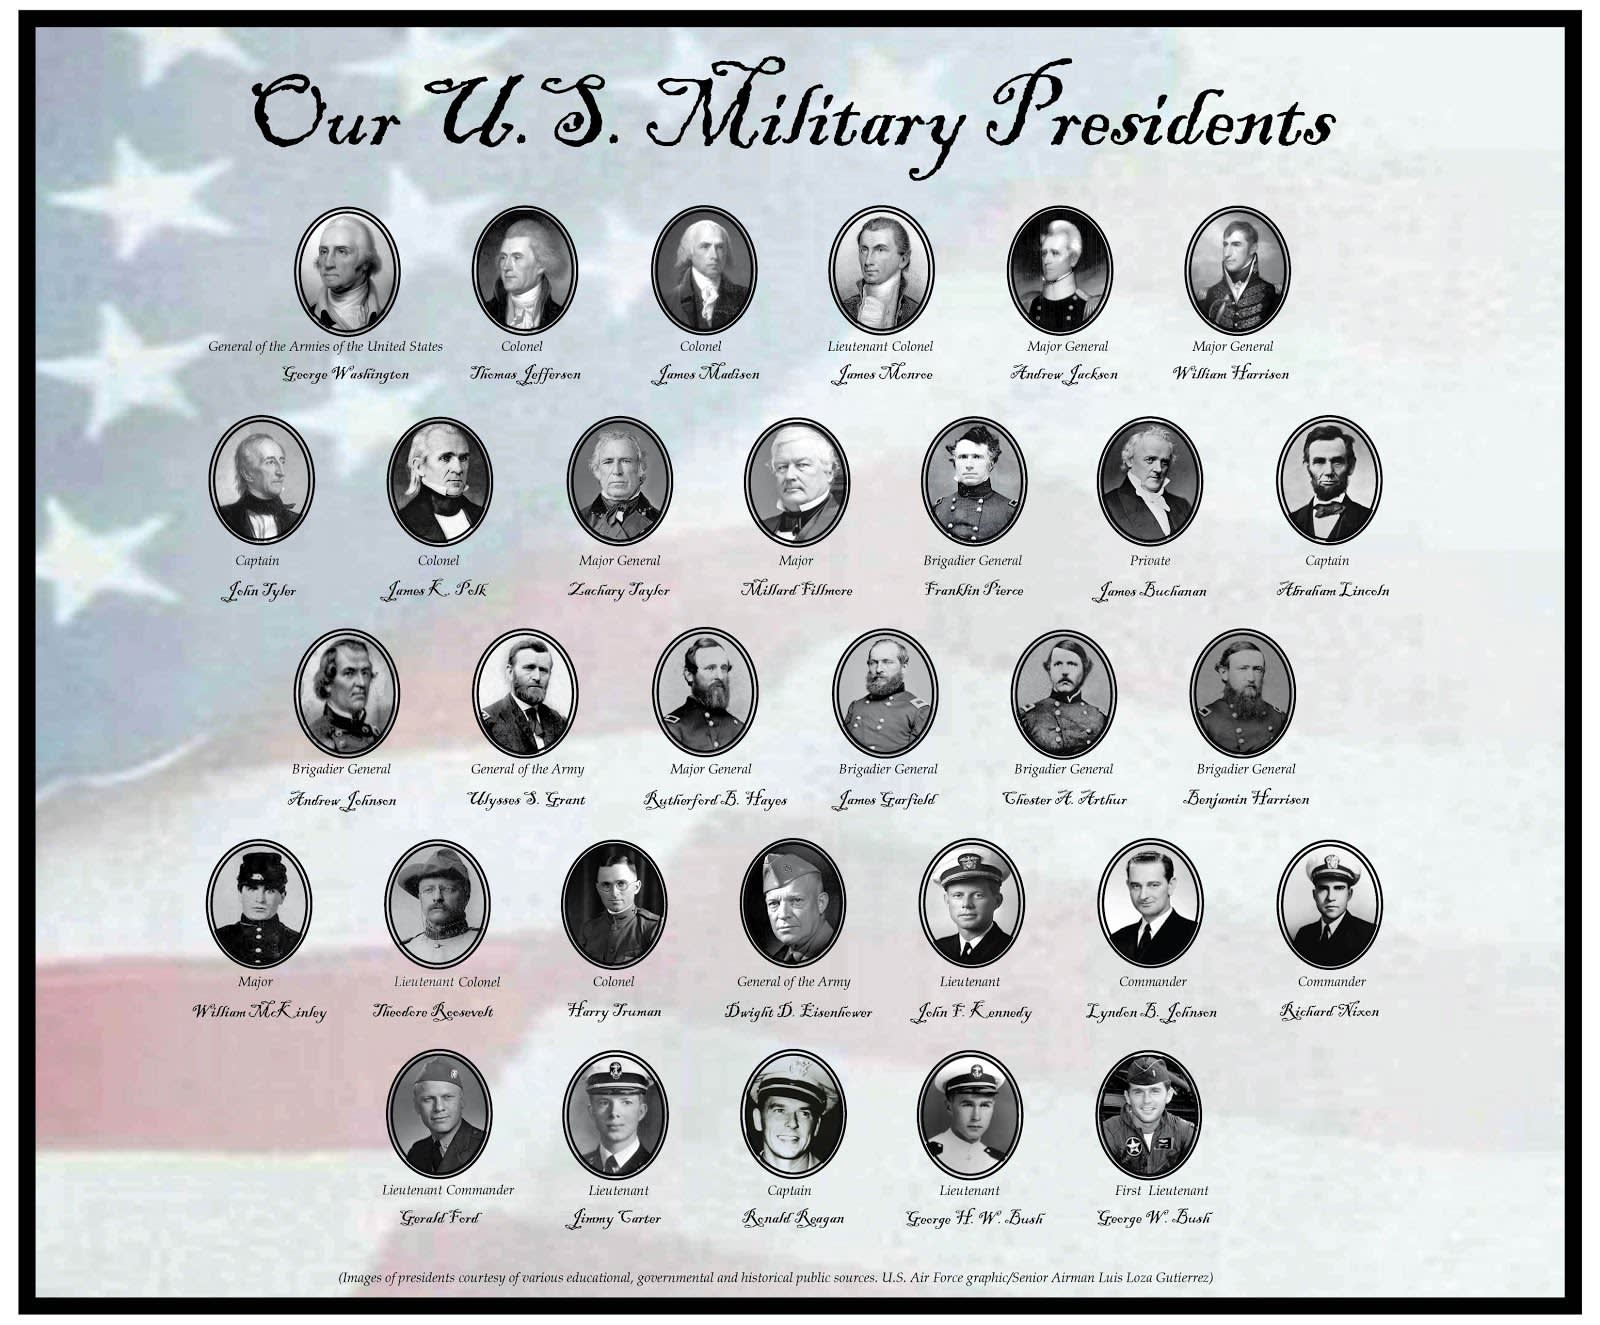 Poster of caucasian US presidents through history.